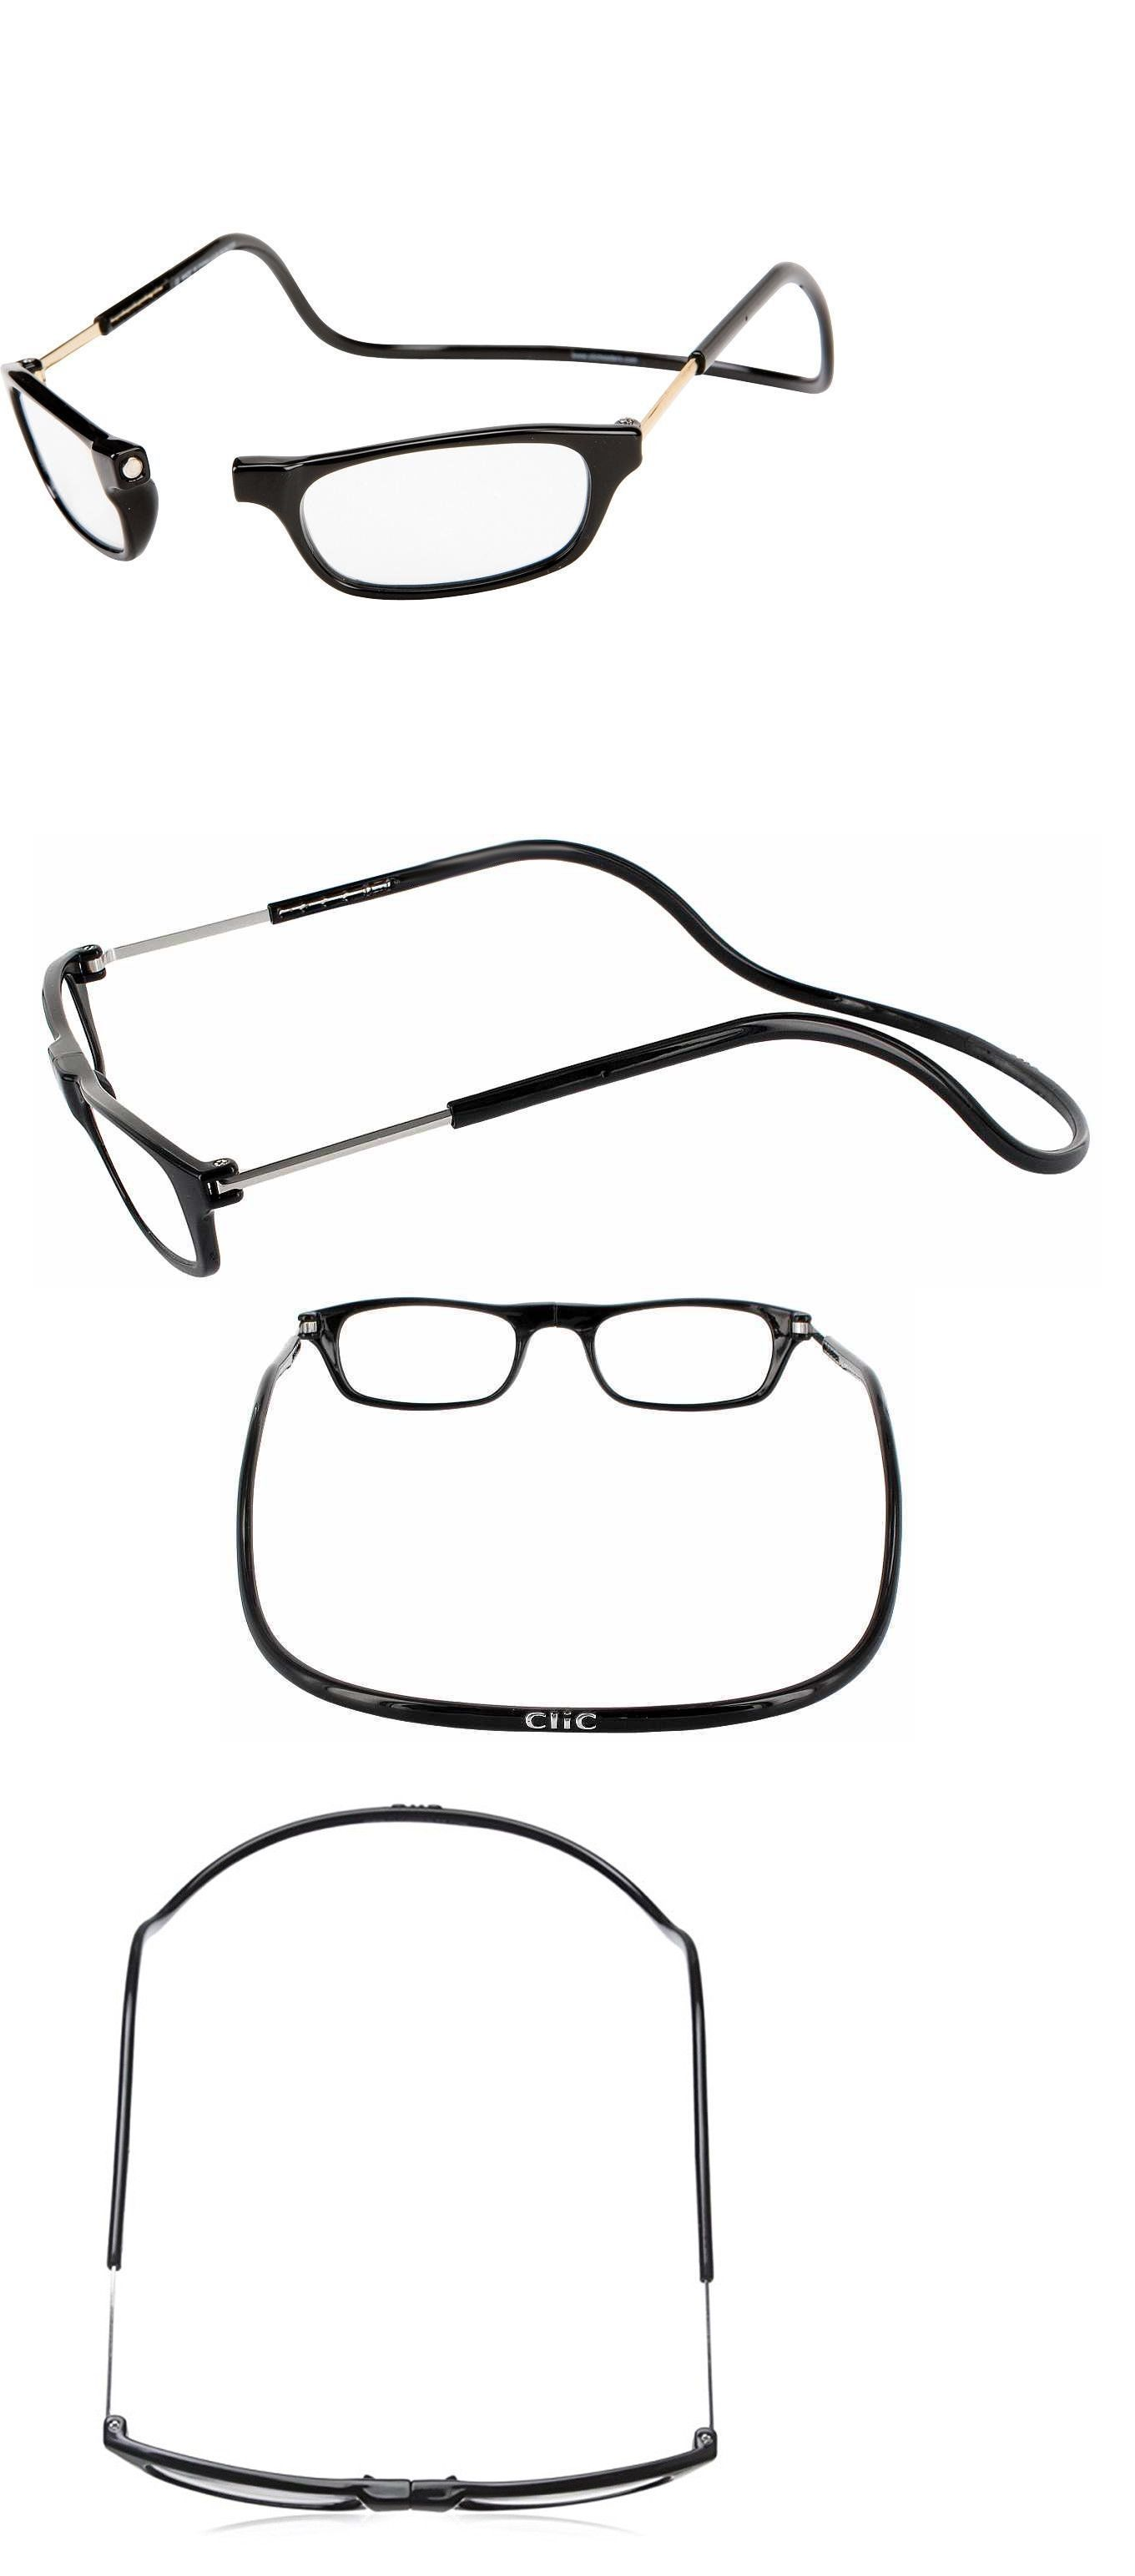 f5a0376ab2 Vision Care 31414  Magnetic Front Reader Glasses Clic Clickit Clicker Snap  Black 1.25 To 3.00